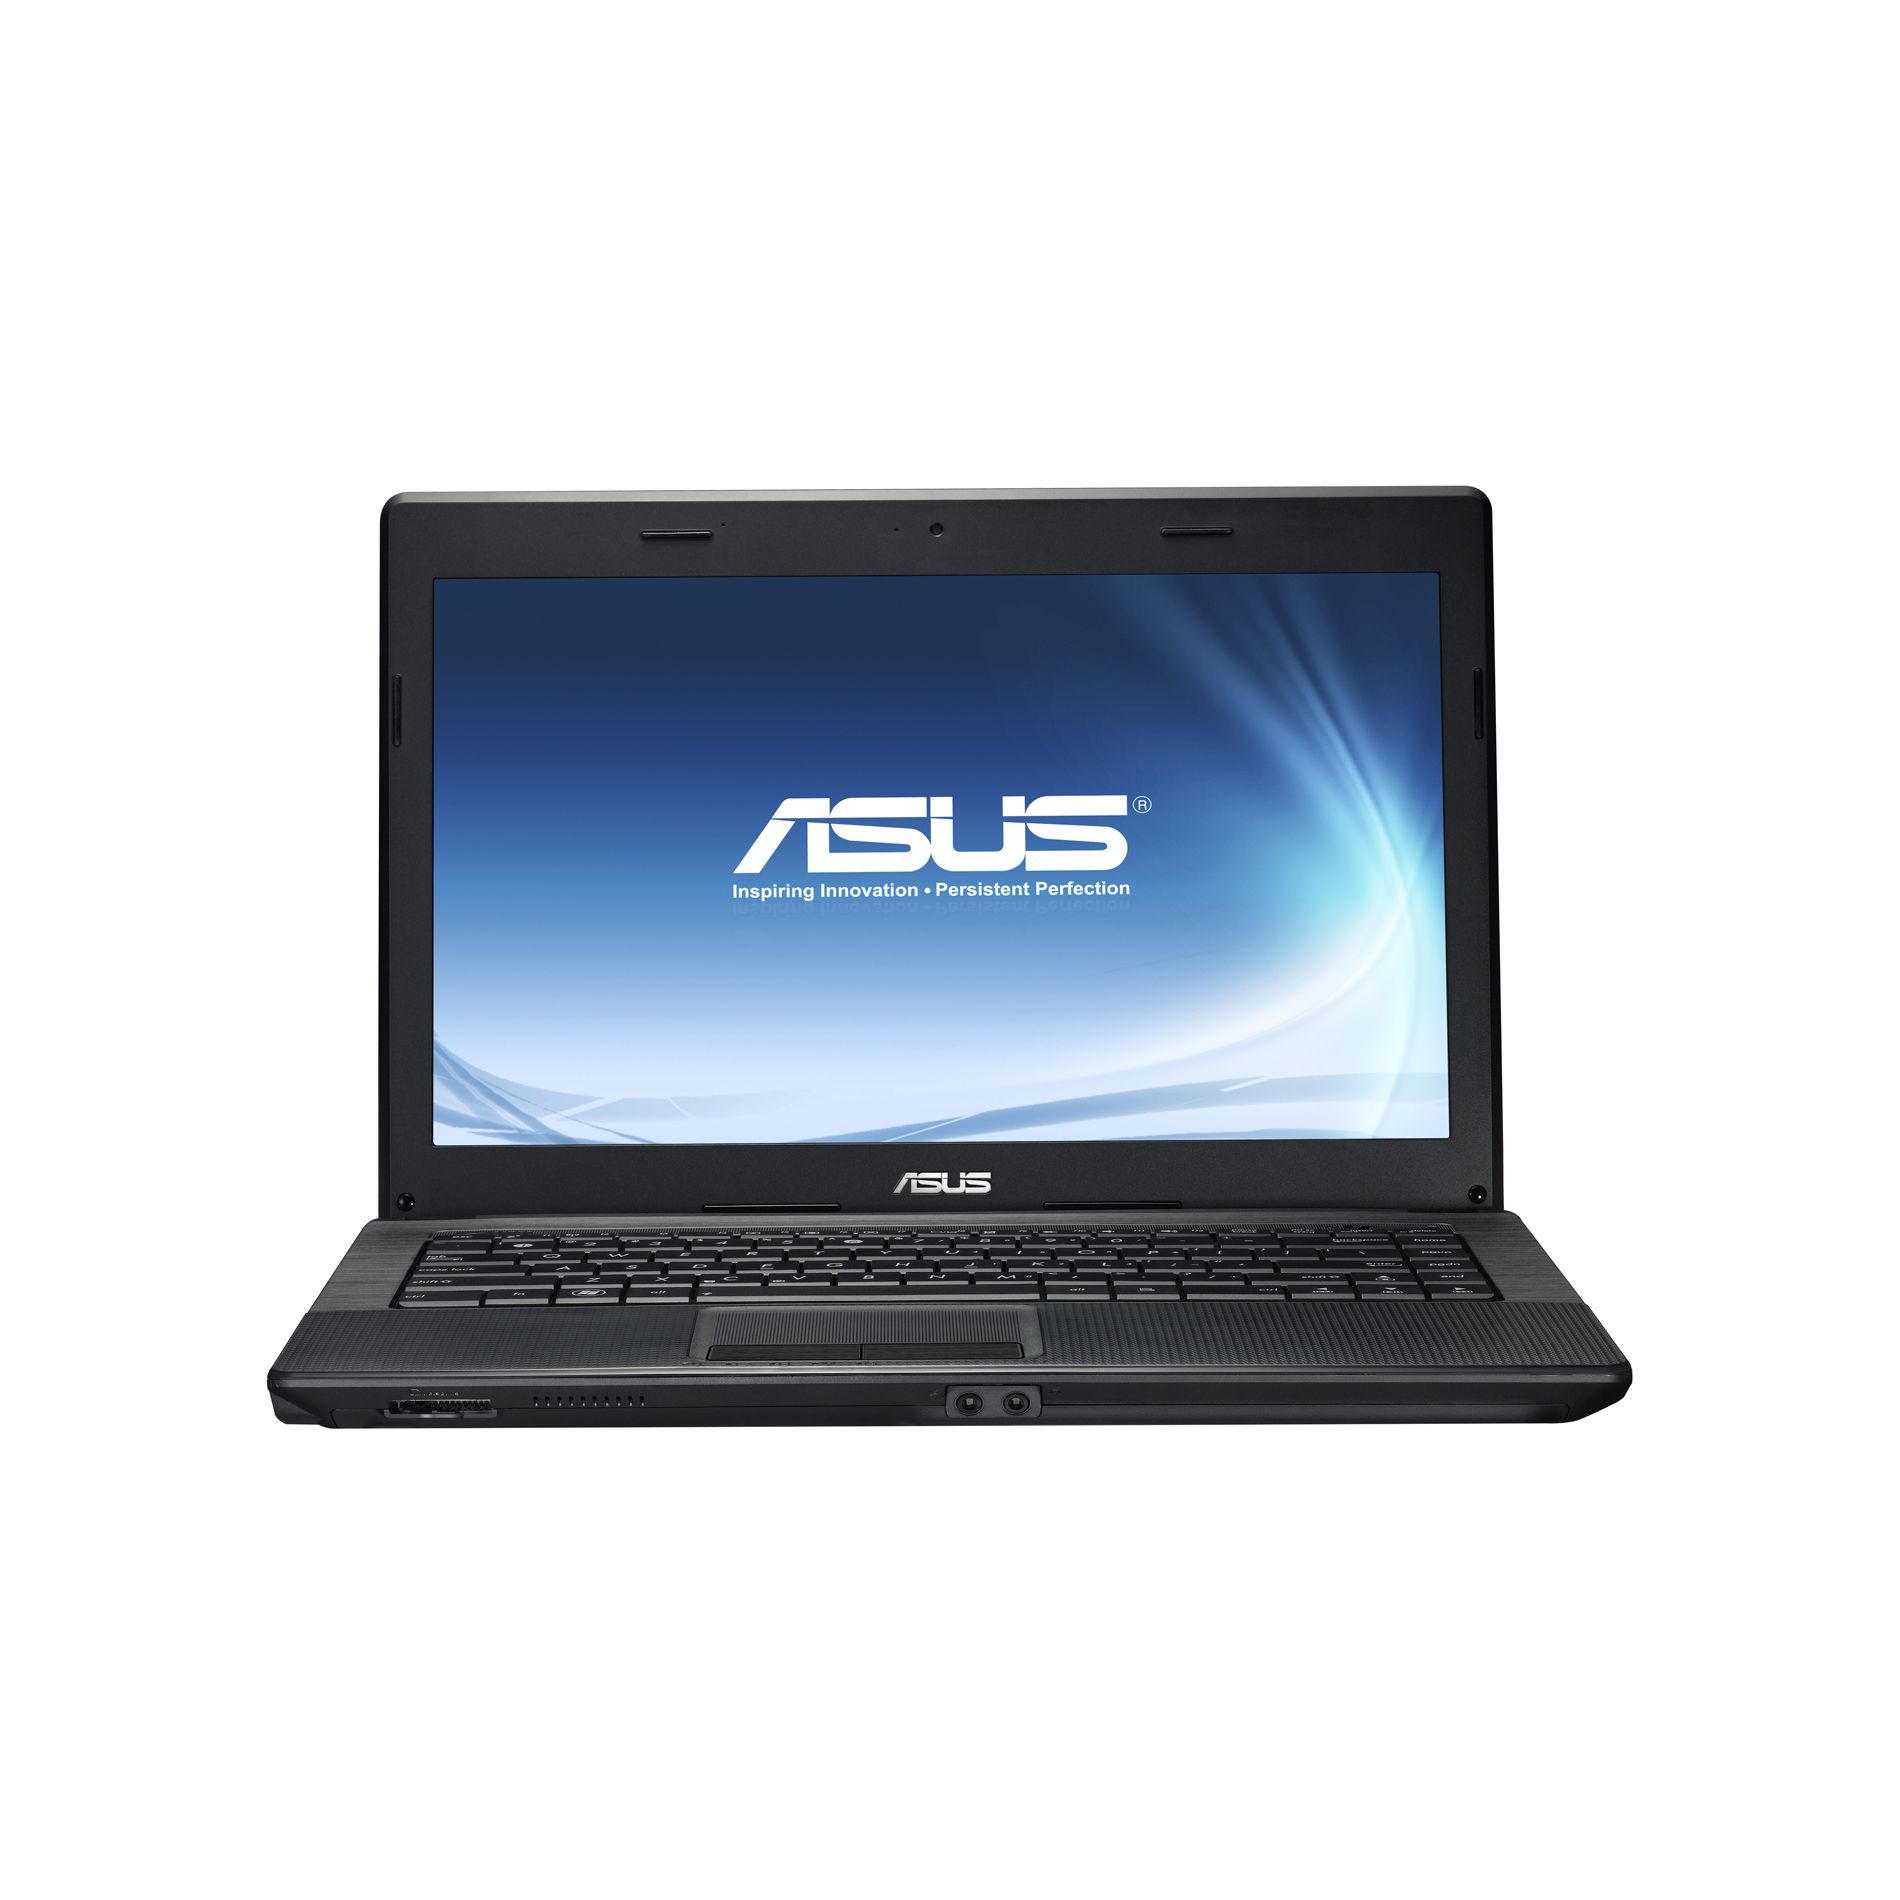 ASUS  X44L Refurbished Notebook PC  ENERGY STAR®